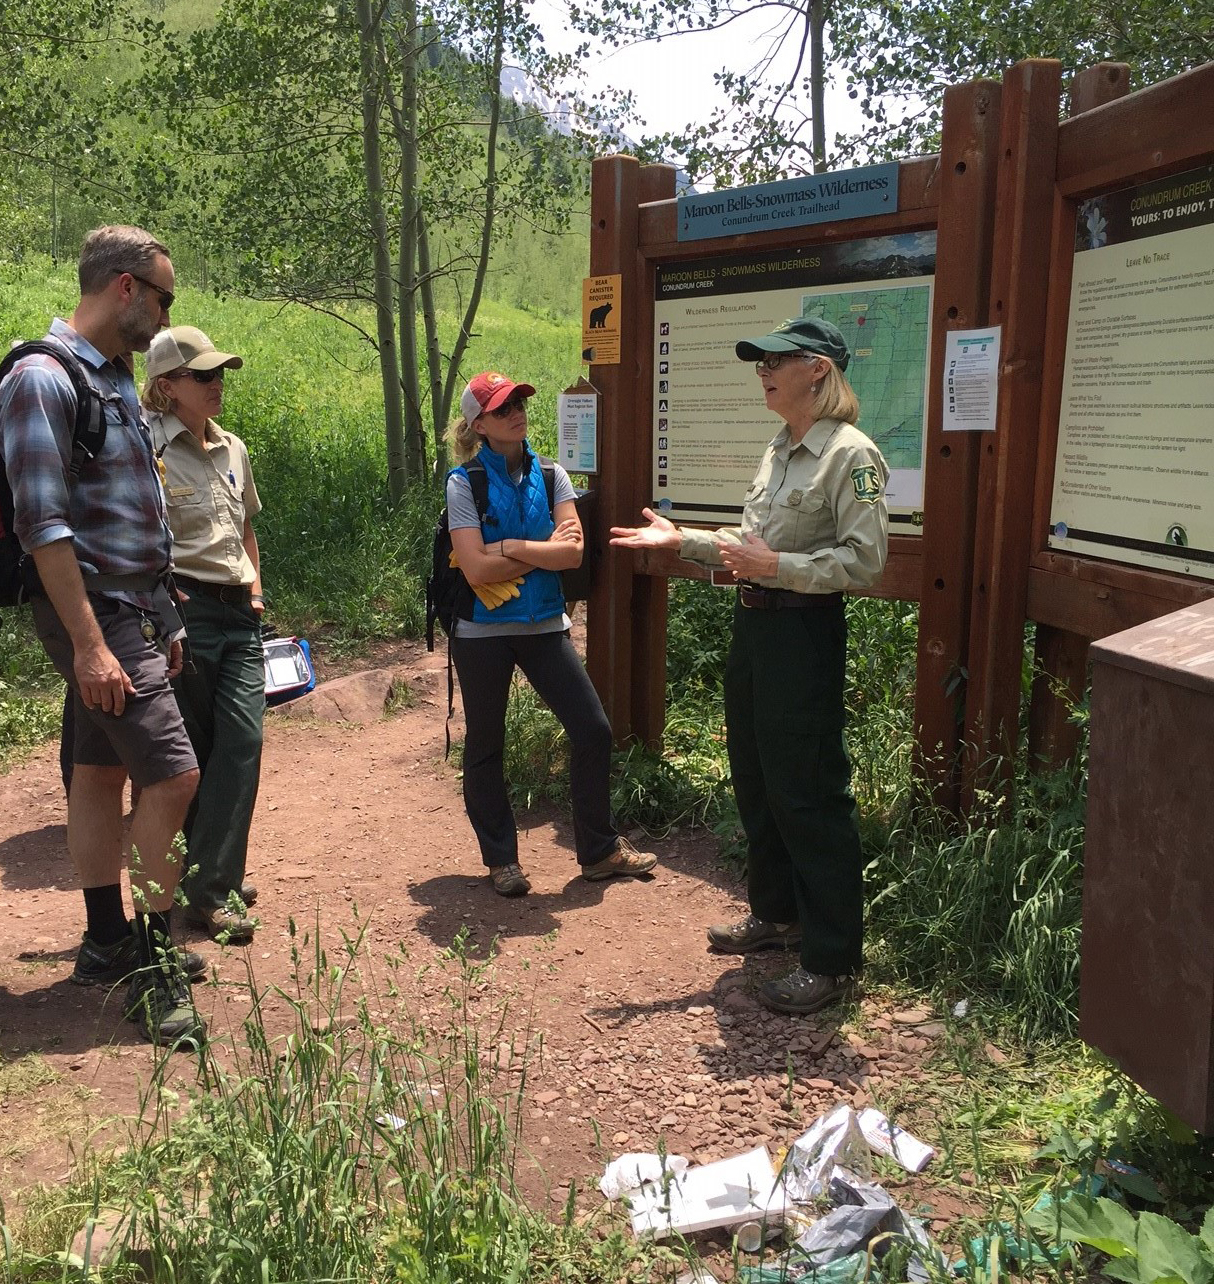 Photo: Woman in Forest Service uniform talks to hikers in front of a trail head sign littered with trash